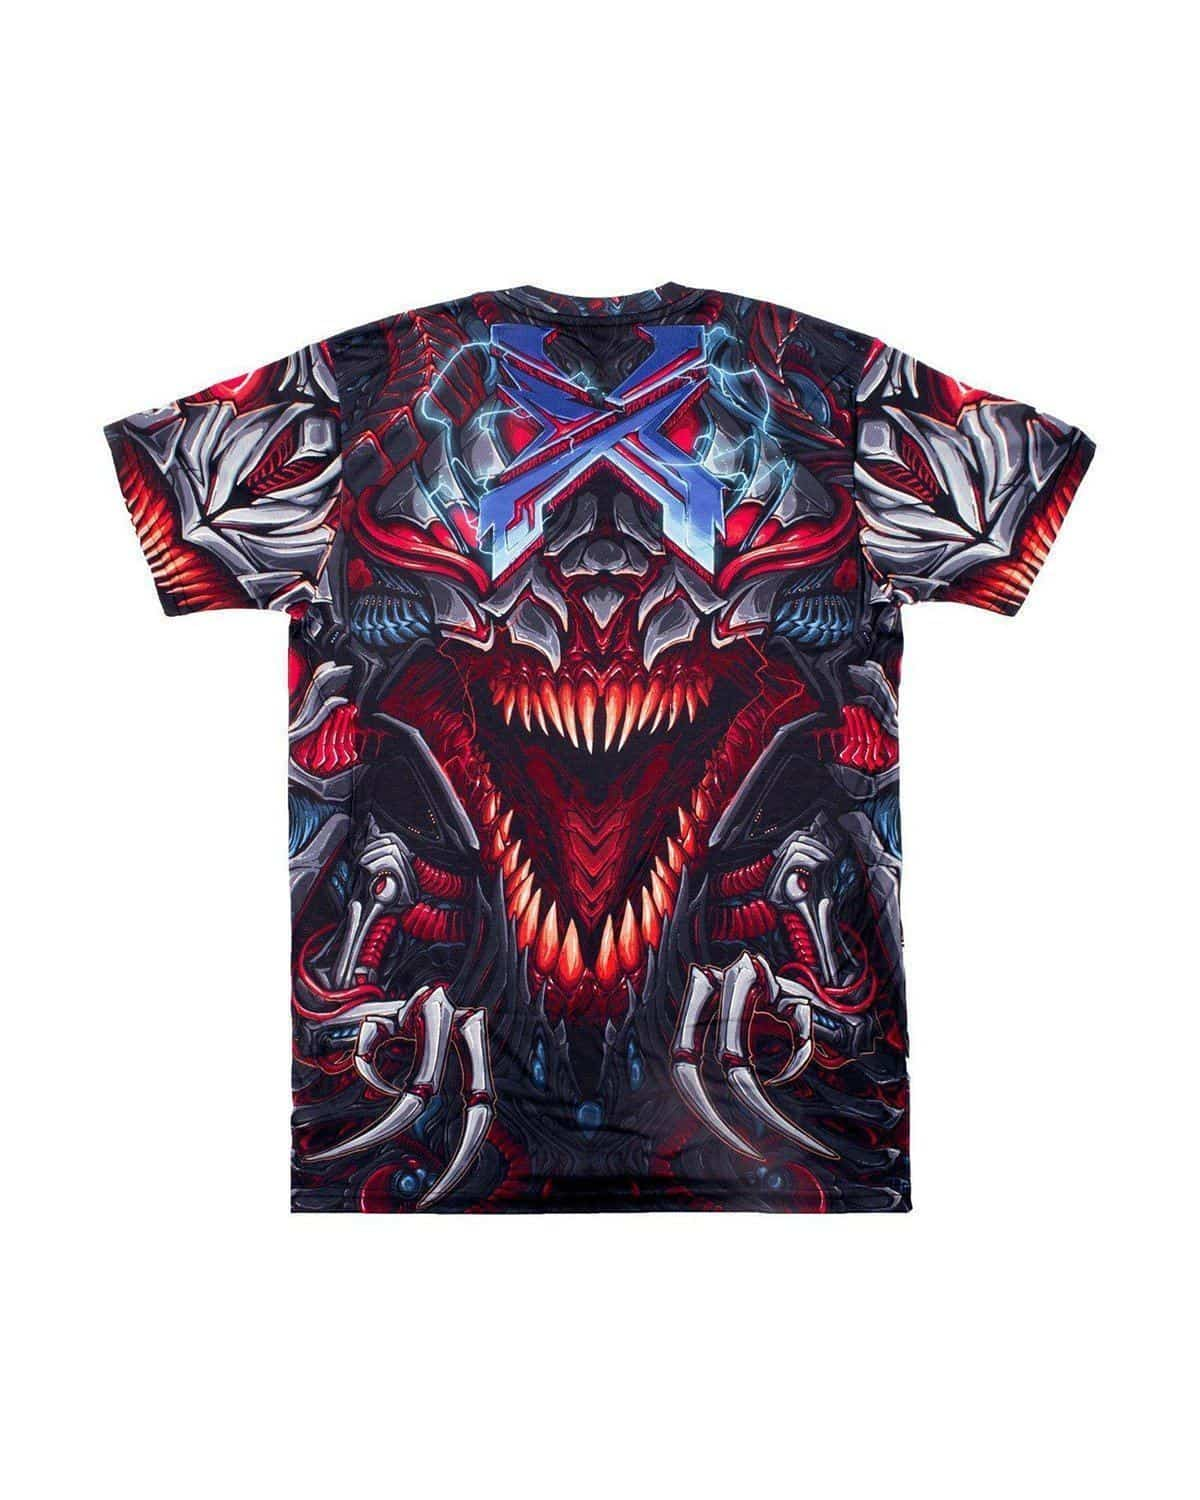 Excision 'Venom Armor' 2018 Tour T-Shirt - Red/Grey